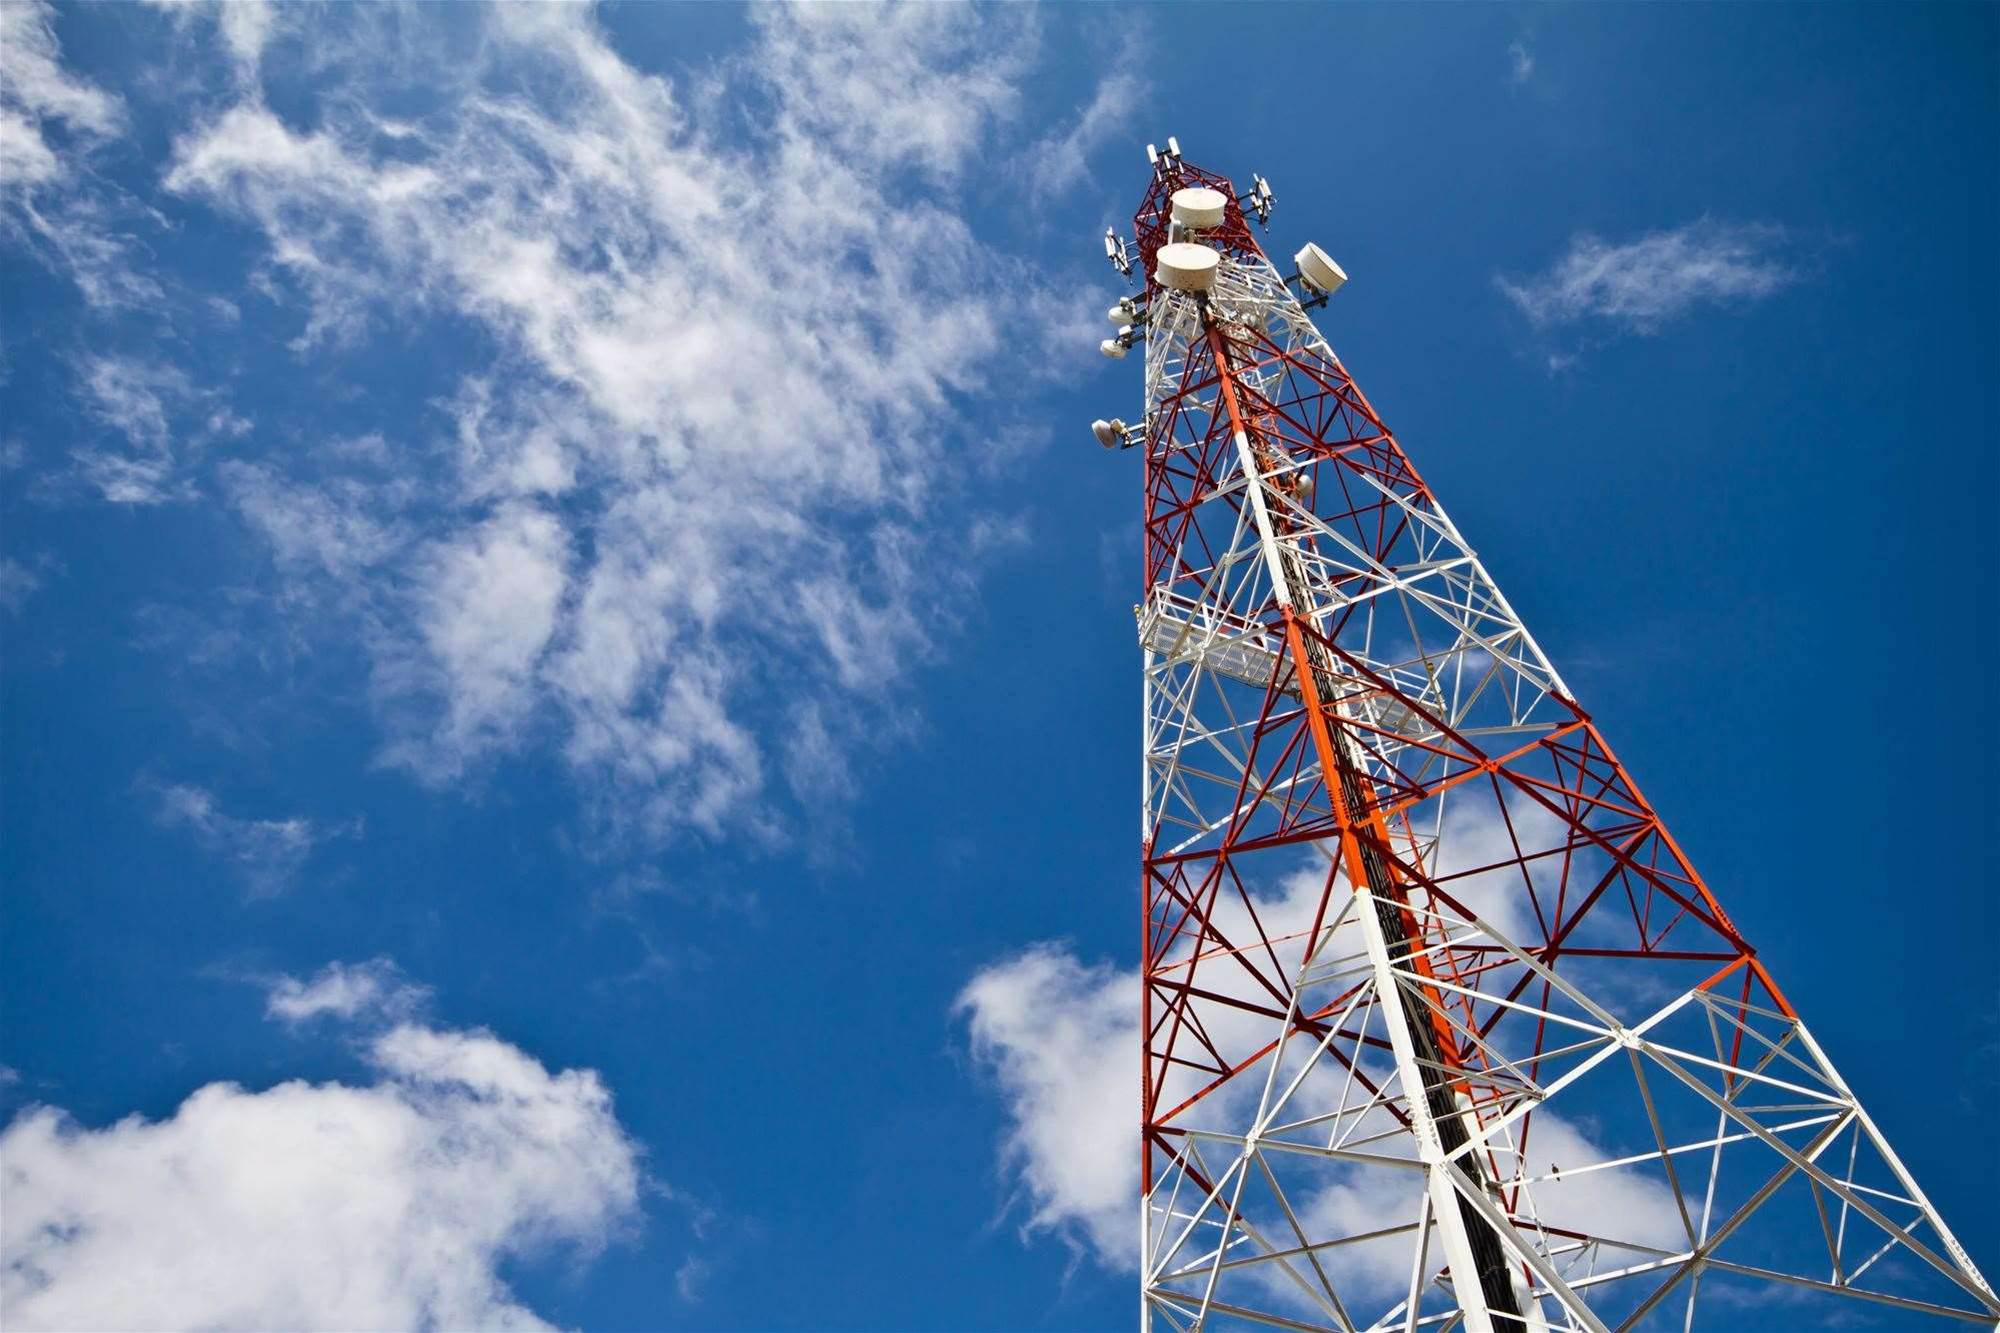 Mobile resellers granted three years mercy for roaming rules